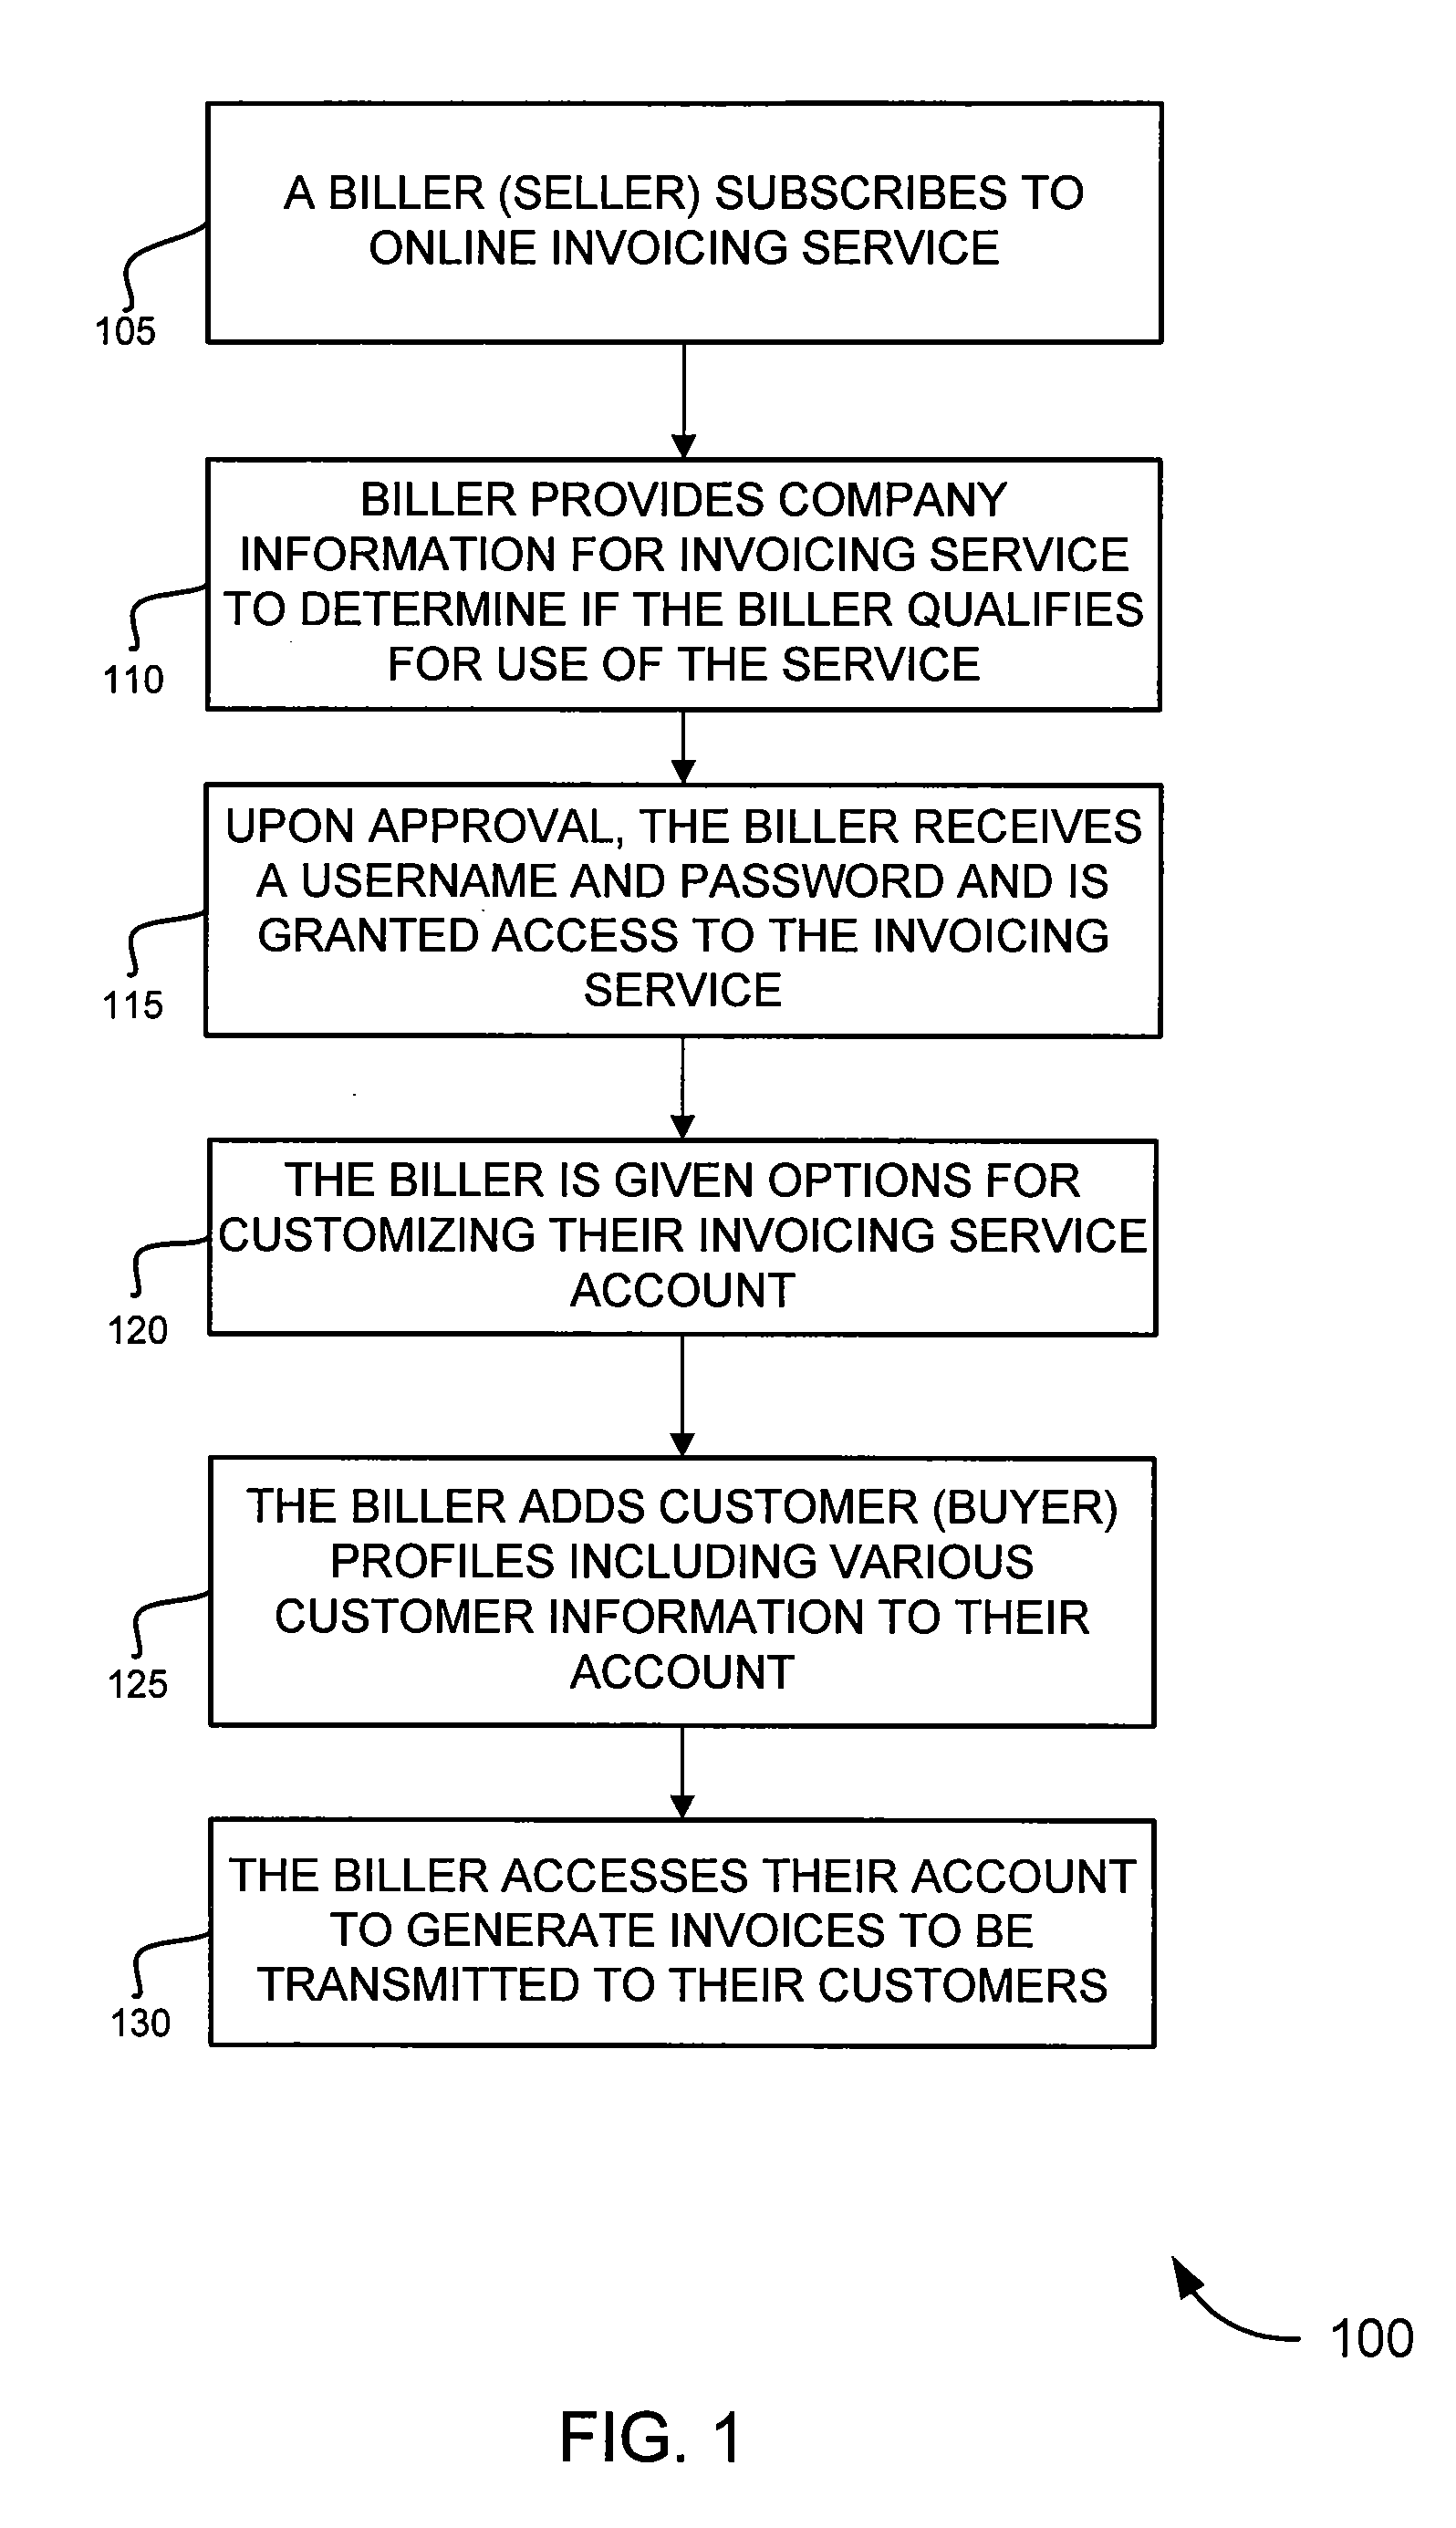 Receipts Template Pdf Patent Us  Methods And Systems For Generating Invoices  Simple Invoice Templates with Free Invoice And Inventory Software Pdf Patent Drawing Canadian Customs Invoice Template Excel